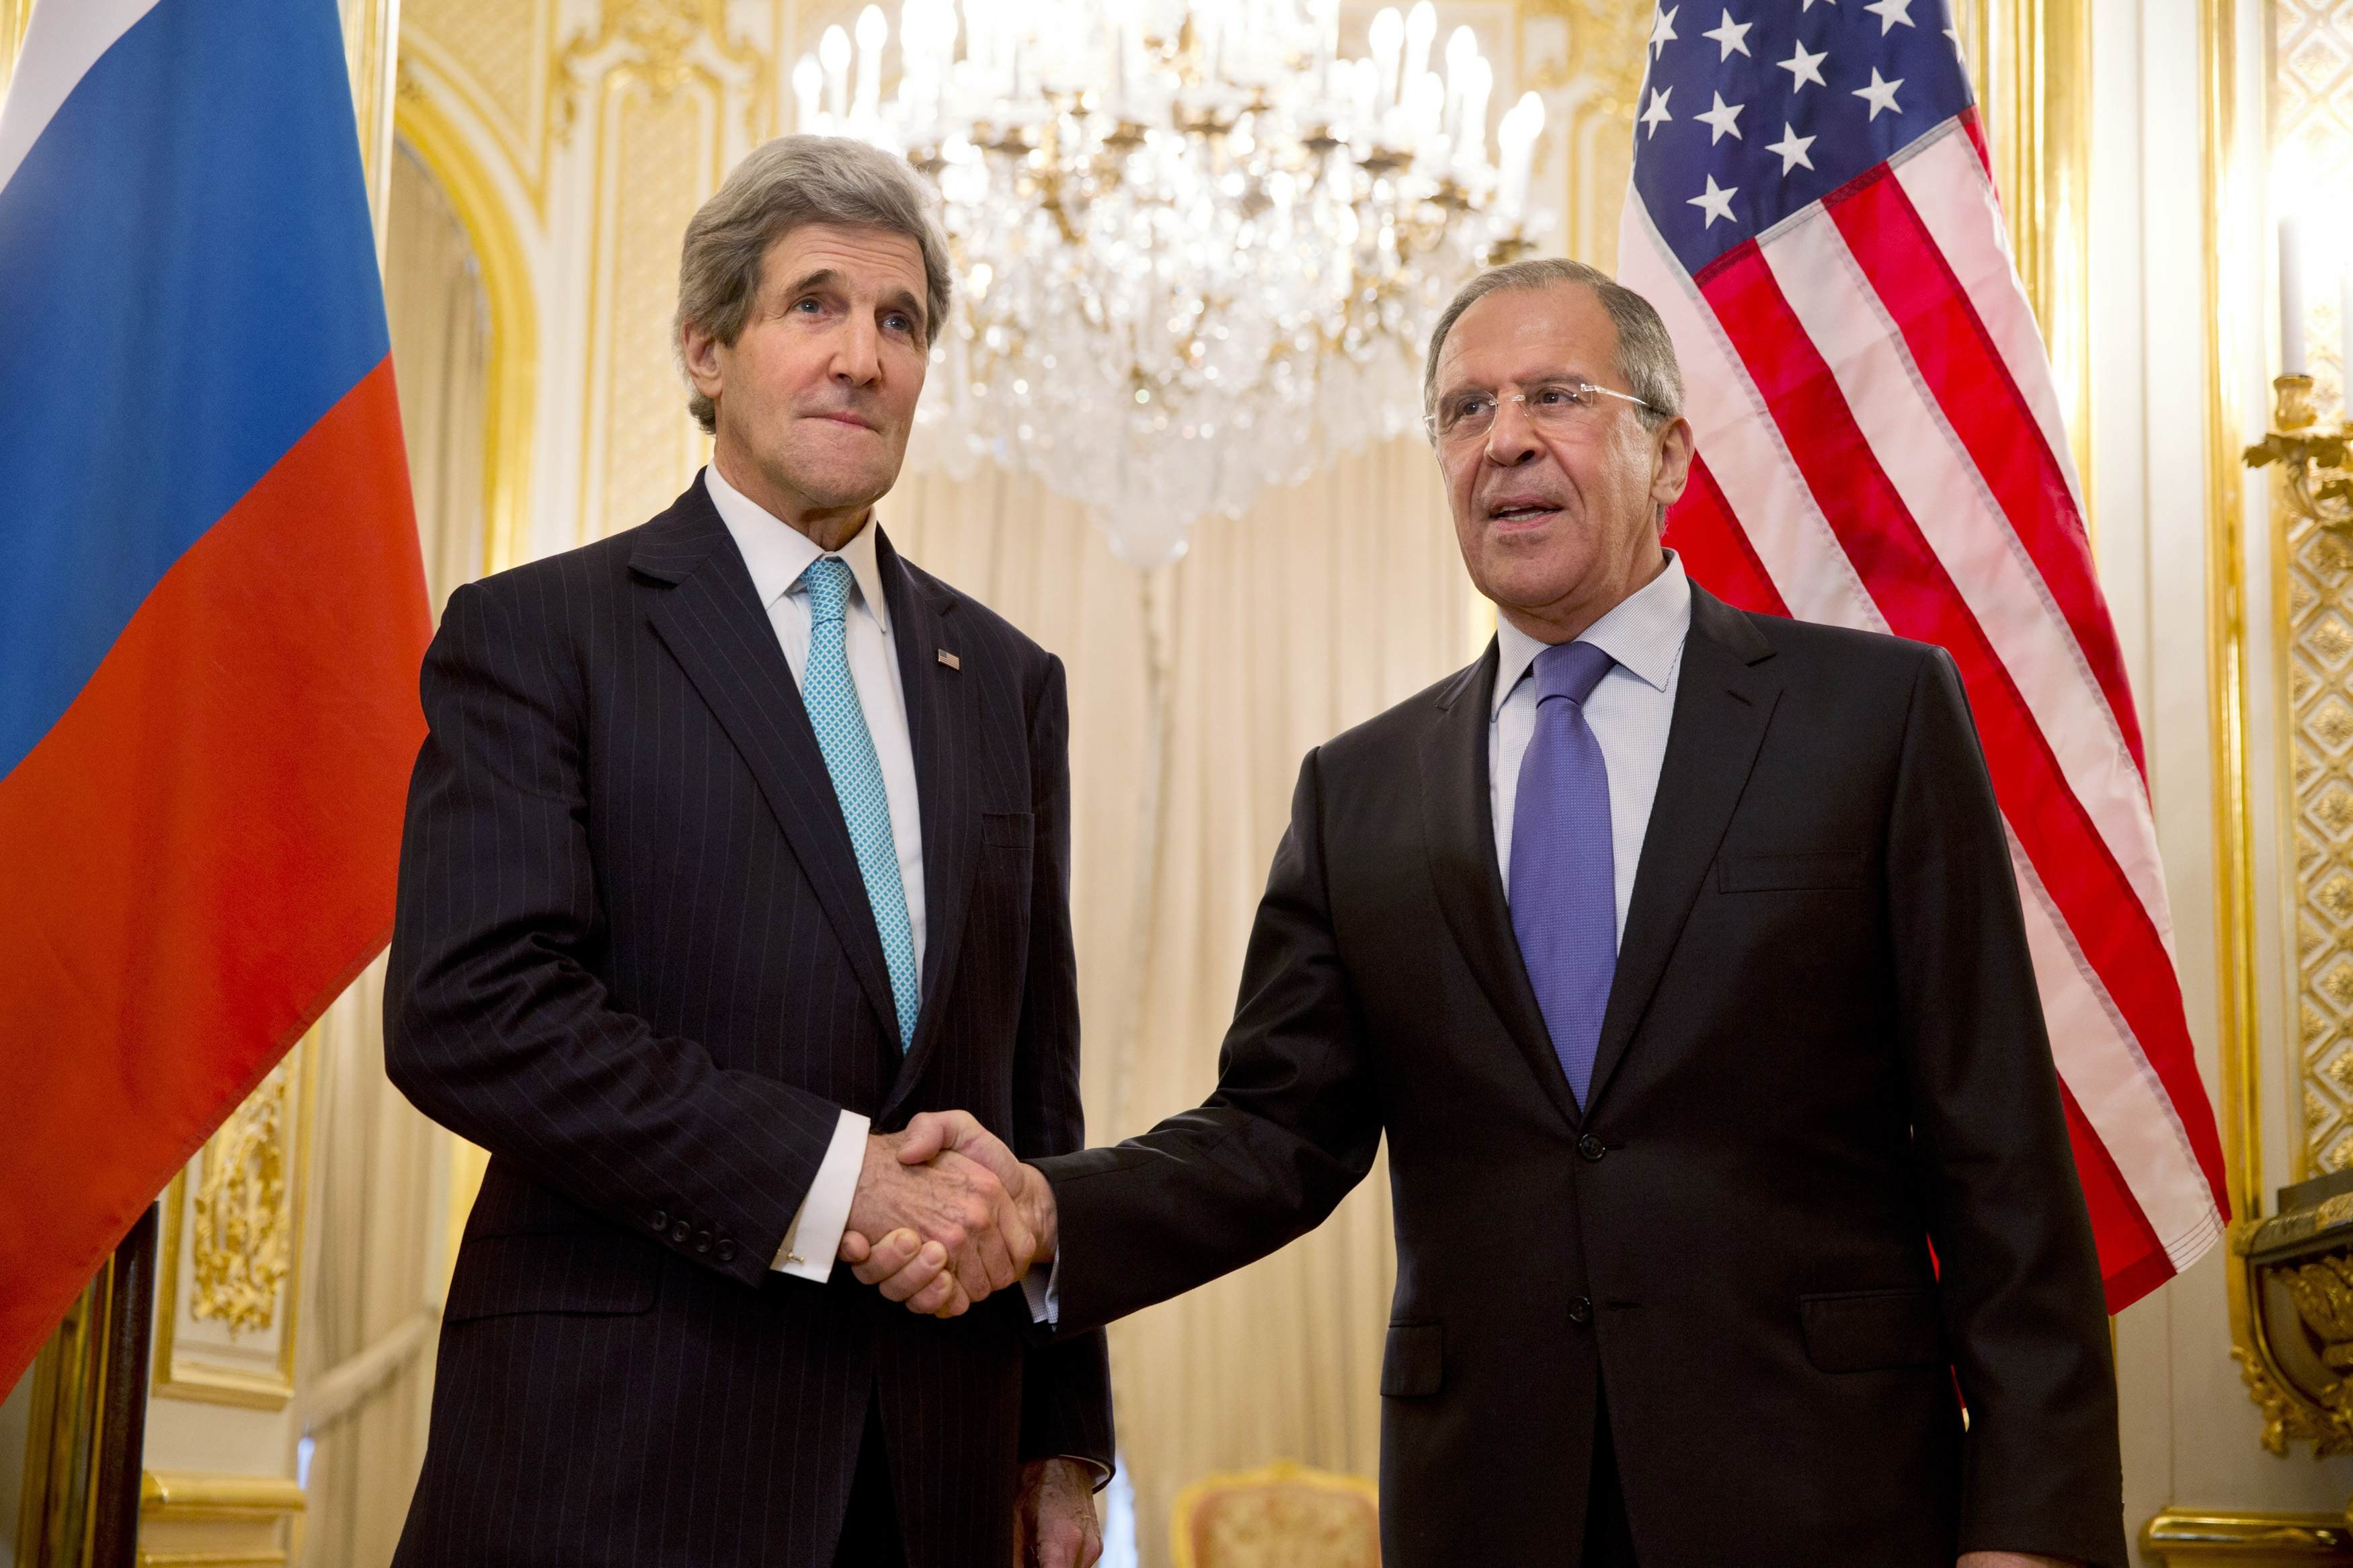 U.S. Secretary of State John Kerry, left, shakes hands with Russian Foreign Minister Sergei Lavrov before their meeting at the Russian Ambassador's residence in Paris, March 30, 2014.